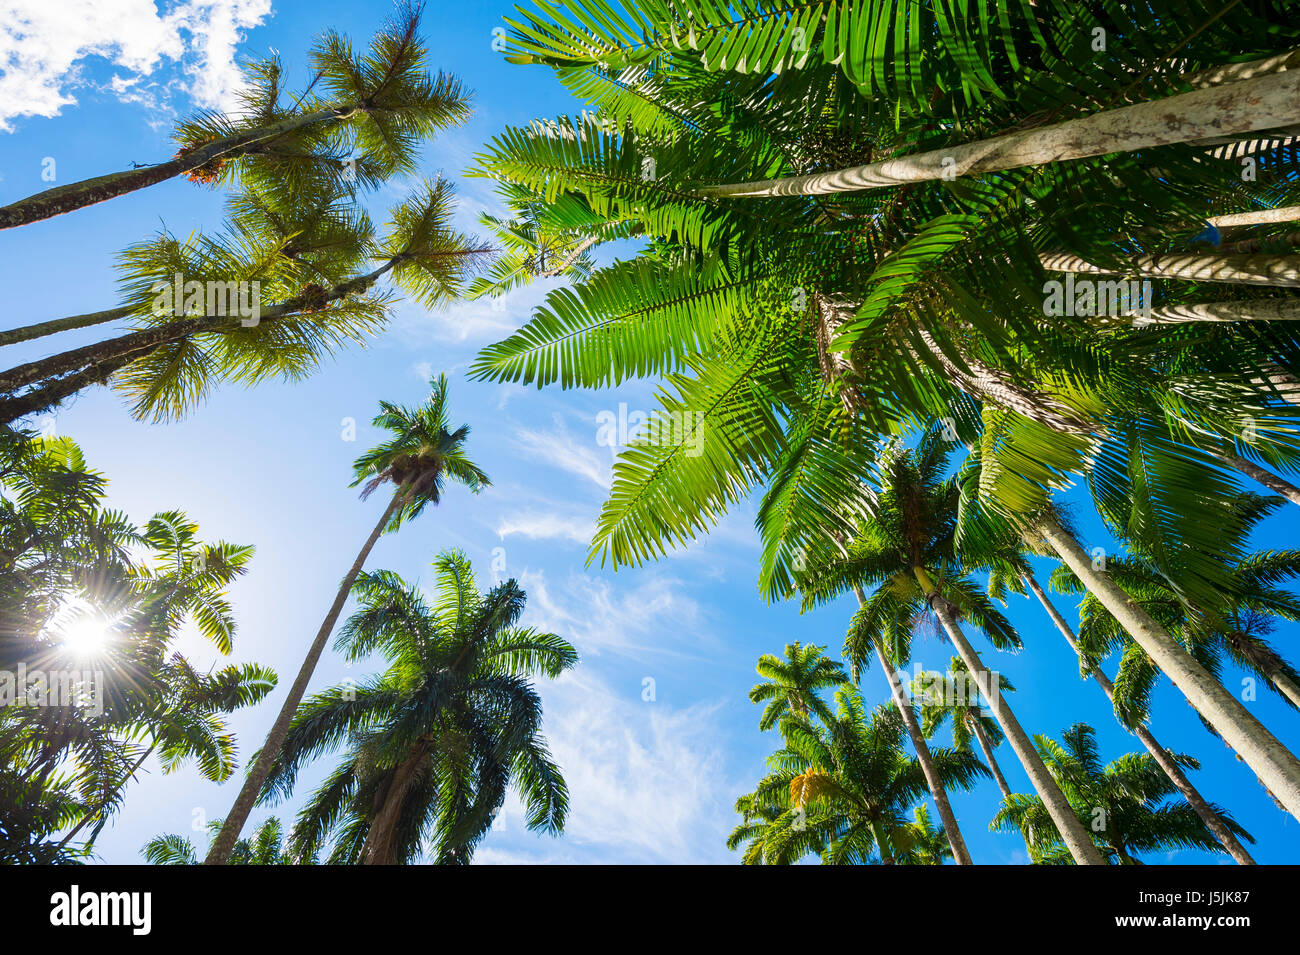 Tall royal palm trees share the bright blue tropical sky with shorter palm fronds in Rio de Janeiro, Brazil - Stock Image